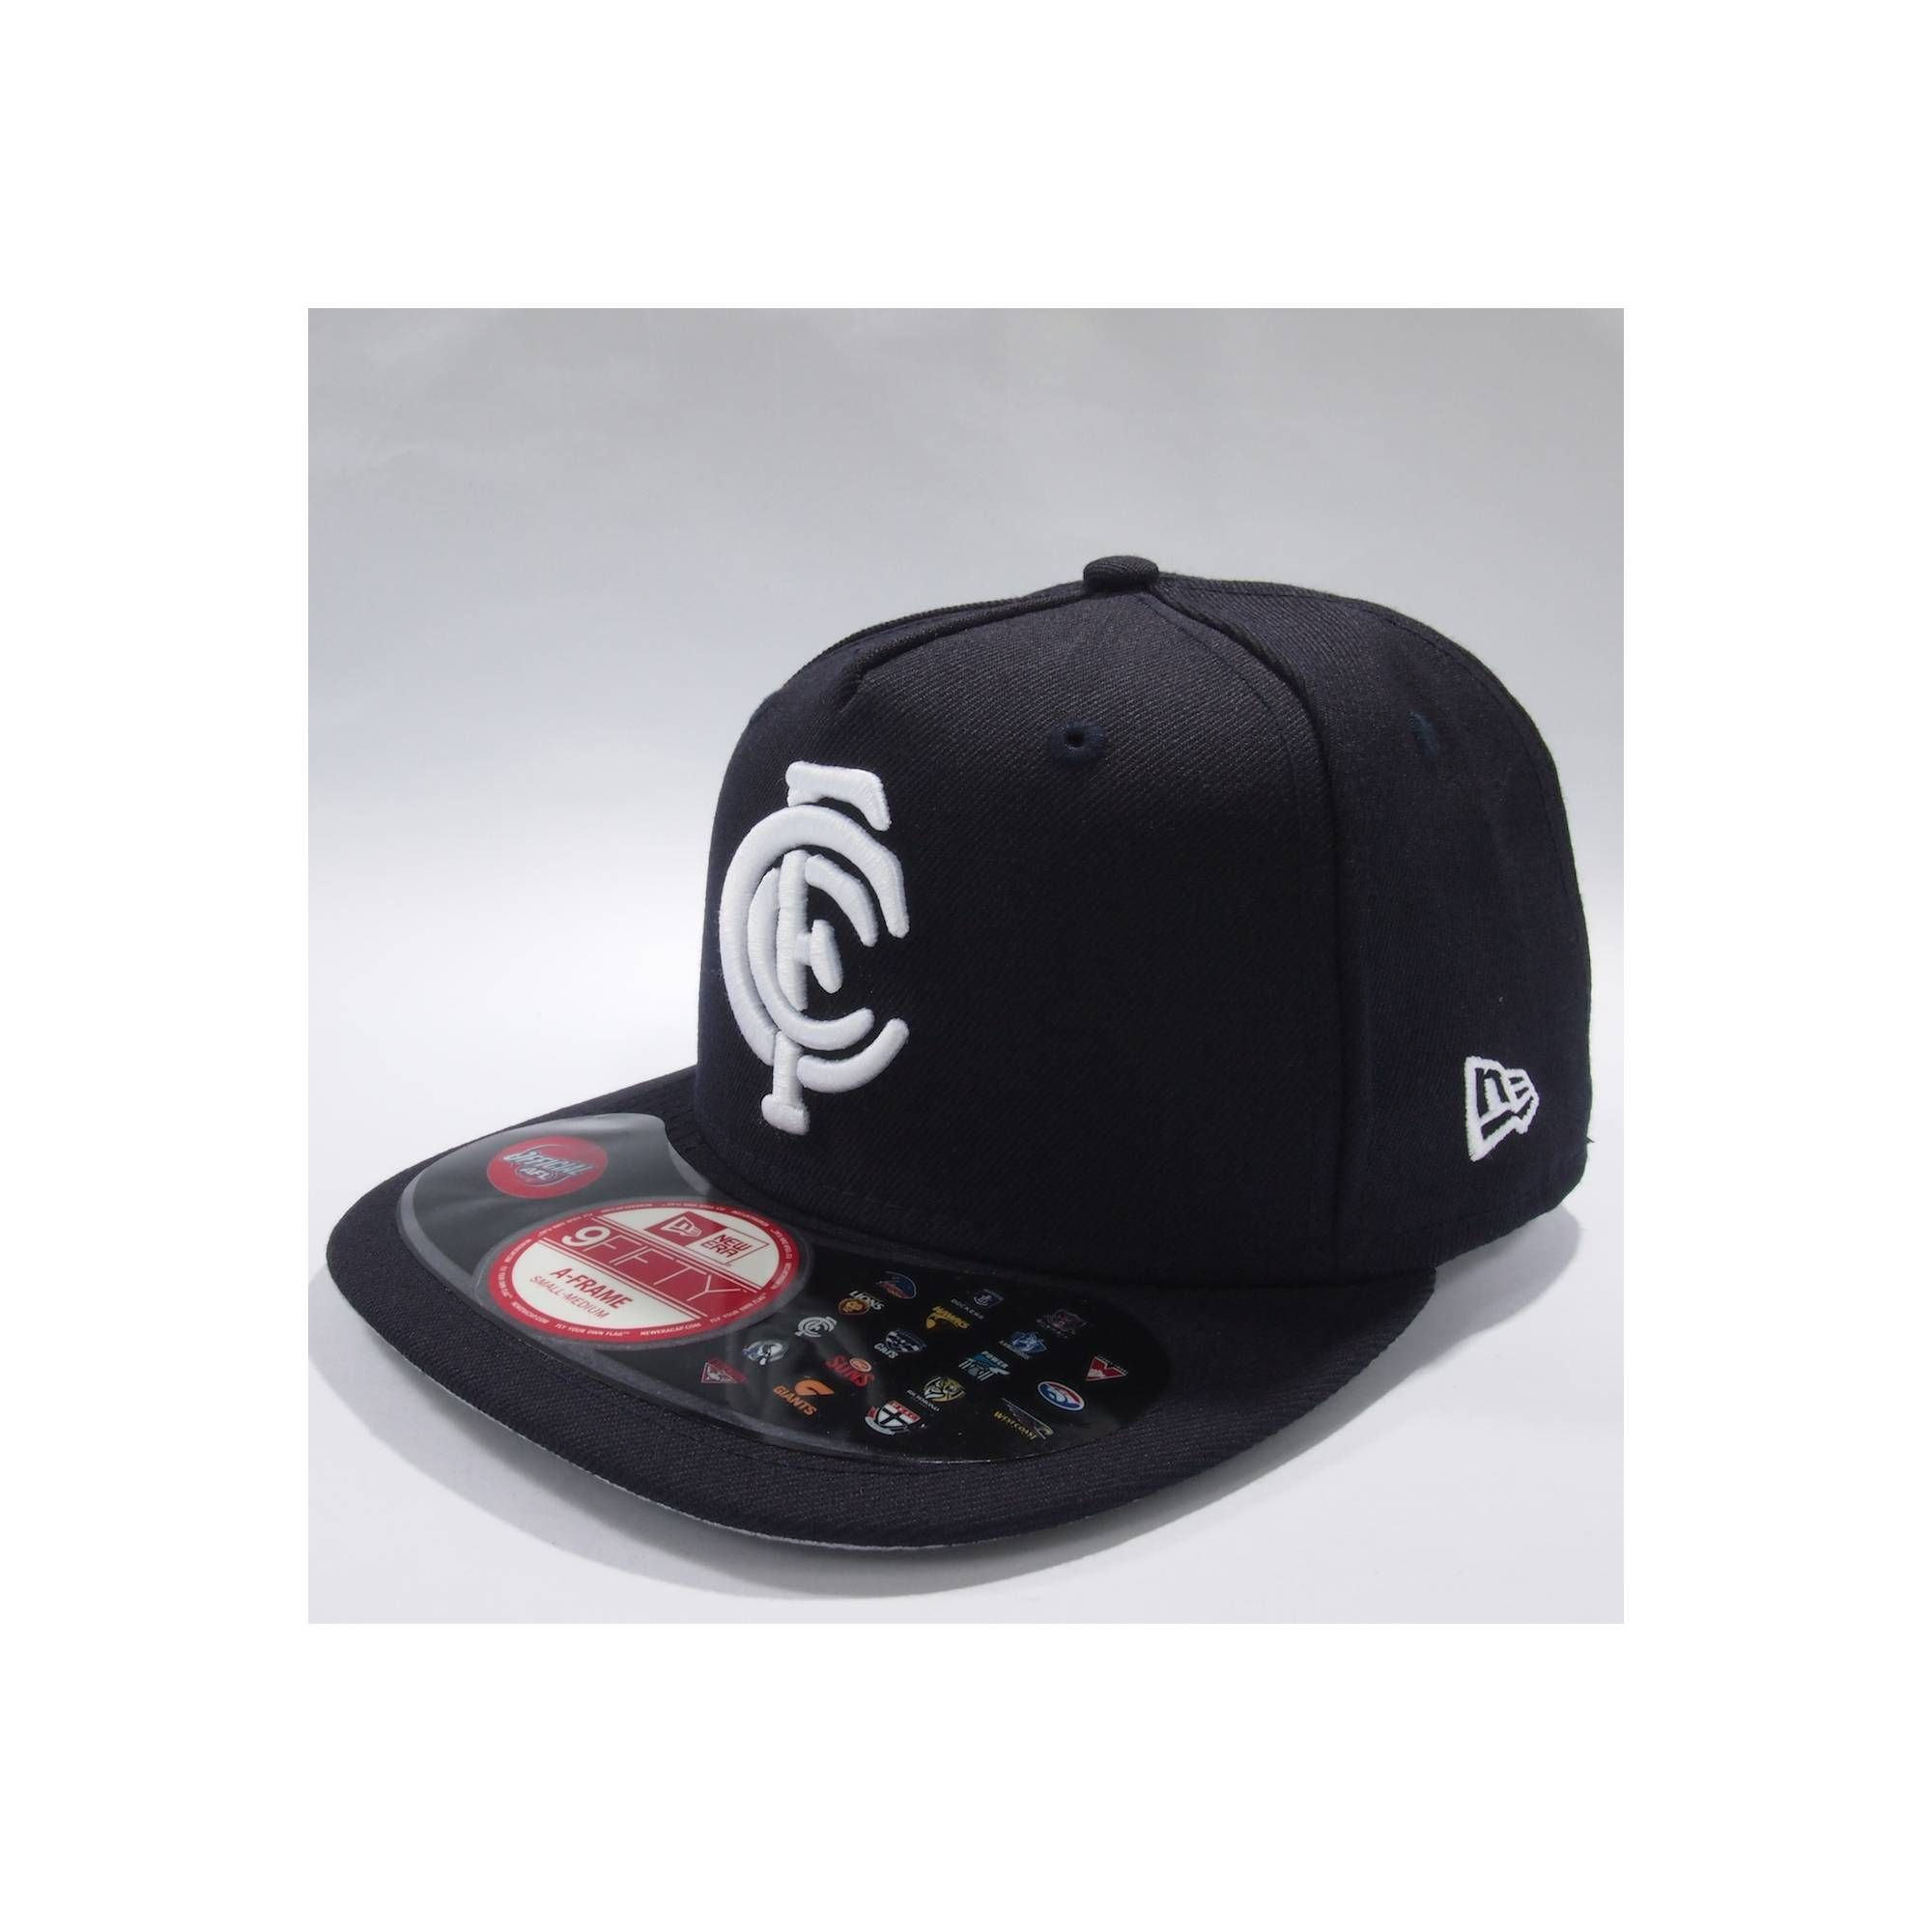 Stand out from the crowd and show your support for Carlton